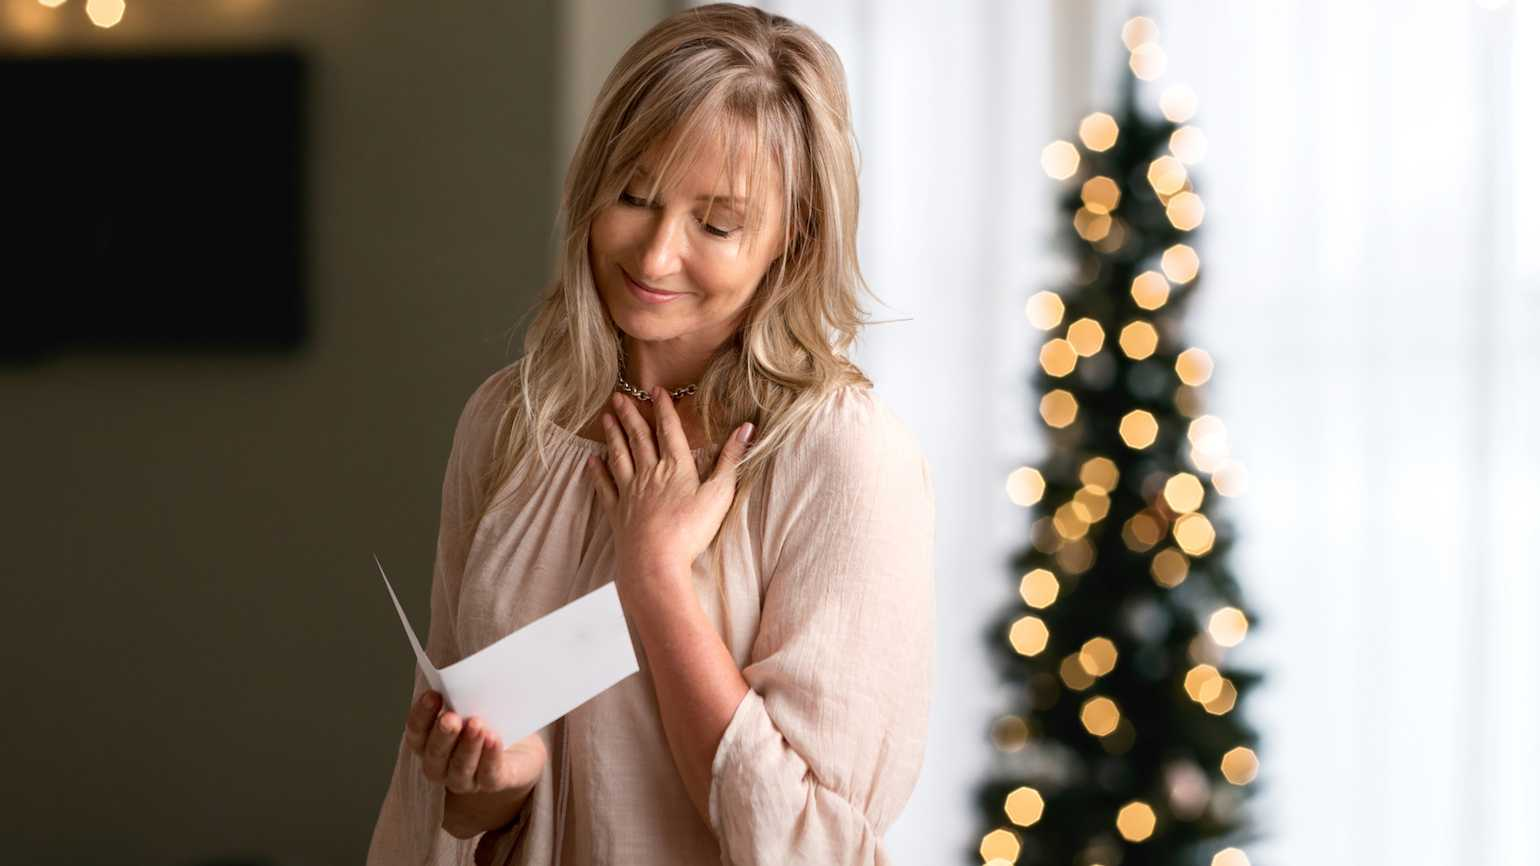 Looking at a Christmas card